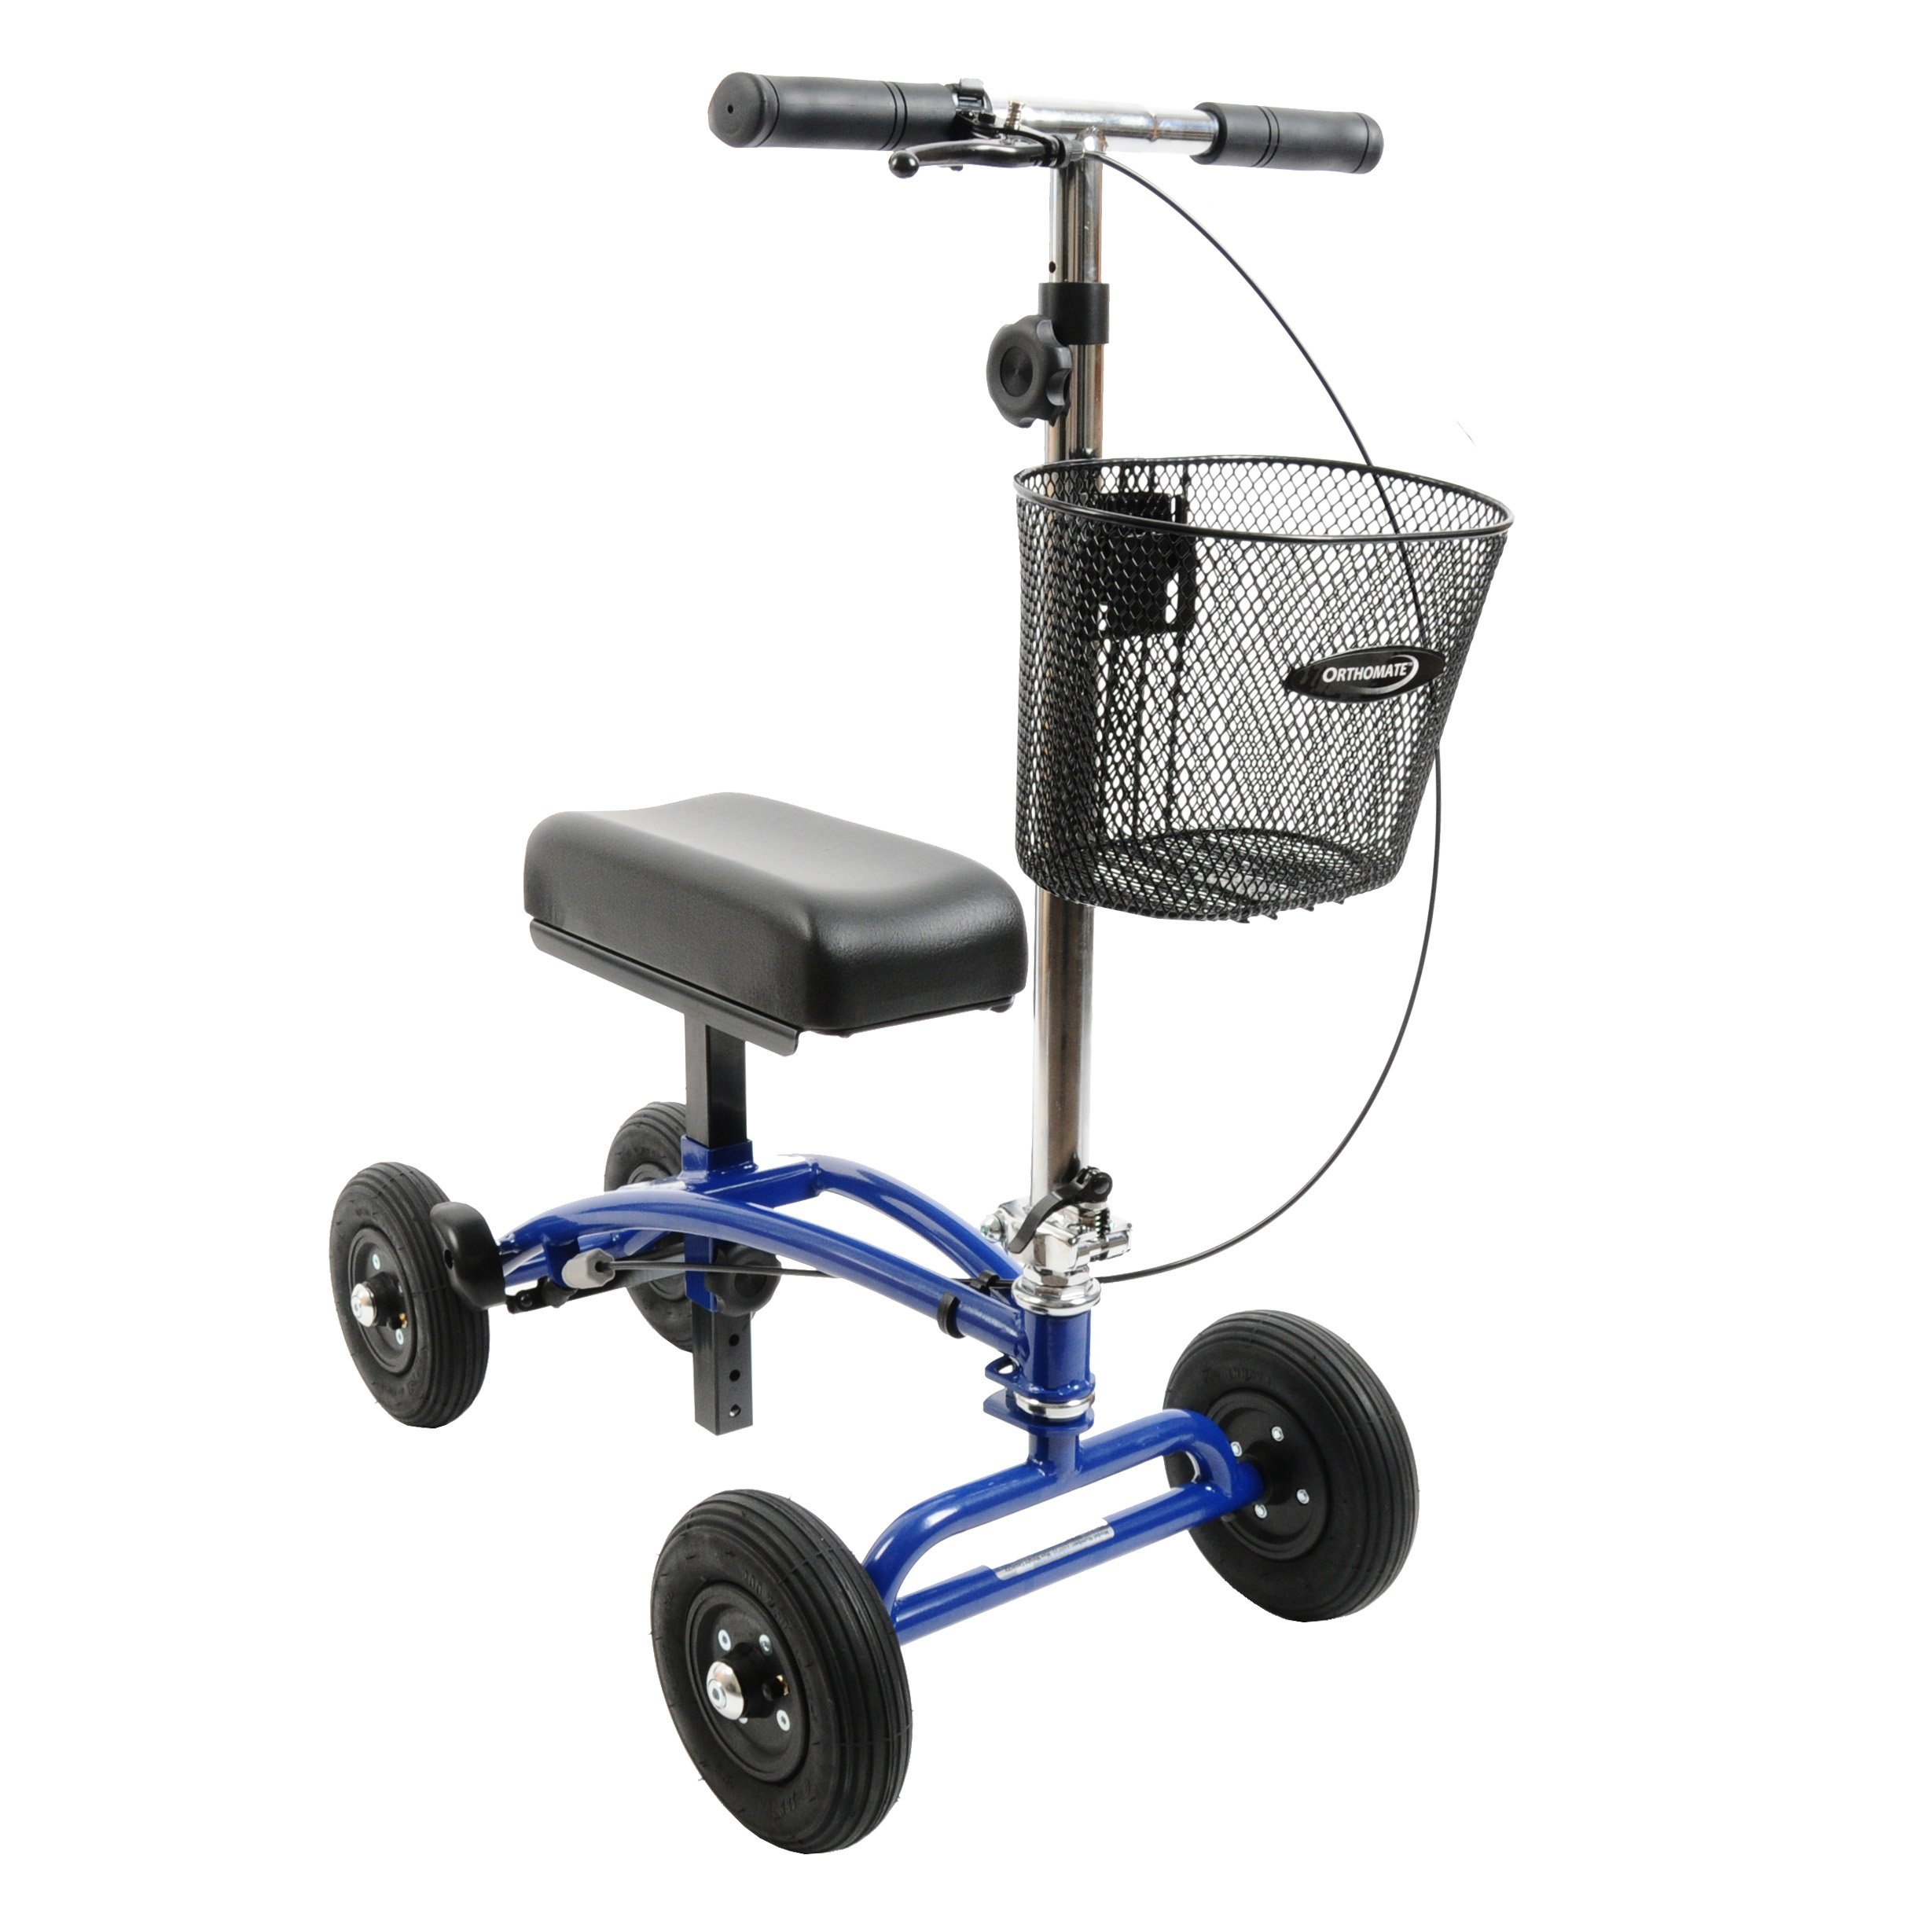 All Terrain Orthomate Knee Scooter with Basket and 8'' Pneumatic Wheels - Great for Outside and Indoors - Steerable Knee Walker - No Tools Setup